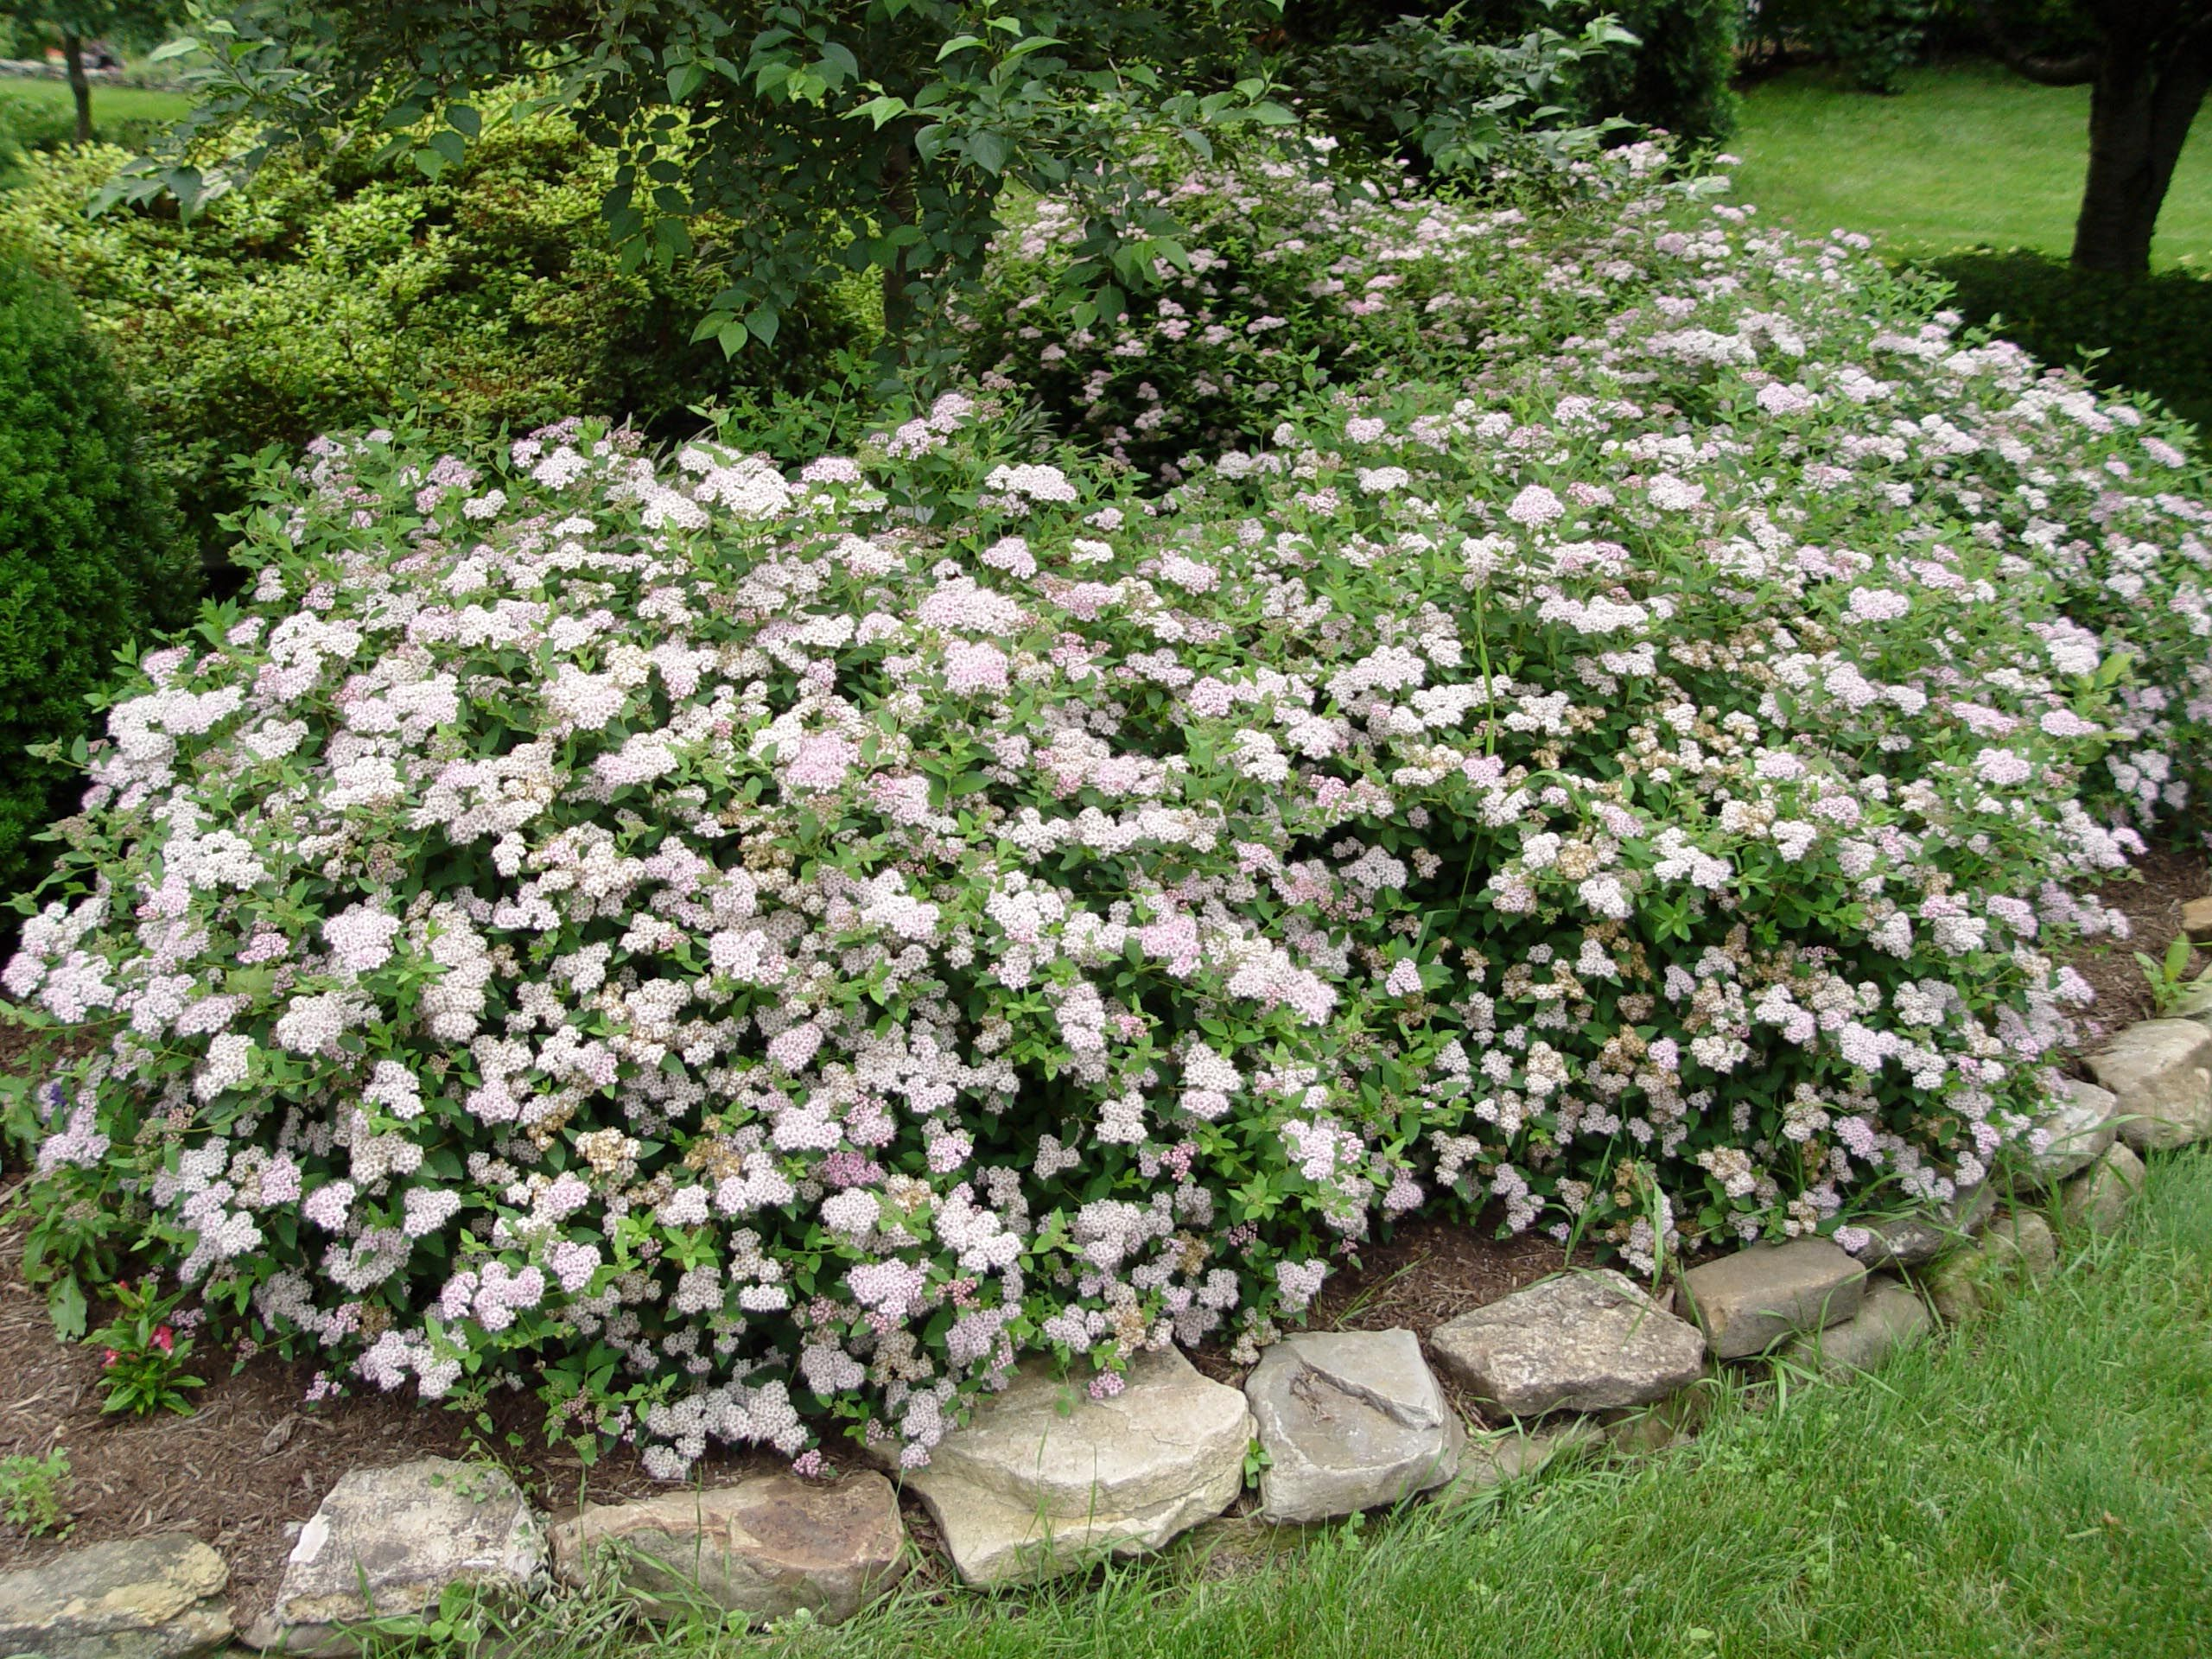 Spirea Very Low Maintenance Hardy Colors White Pink Rose